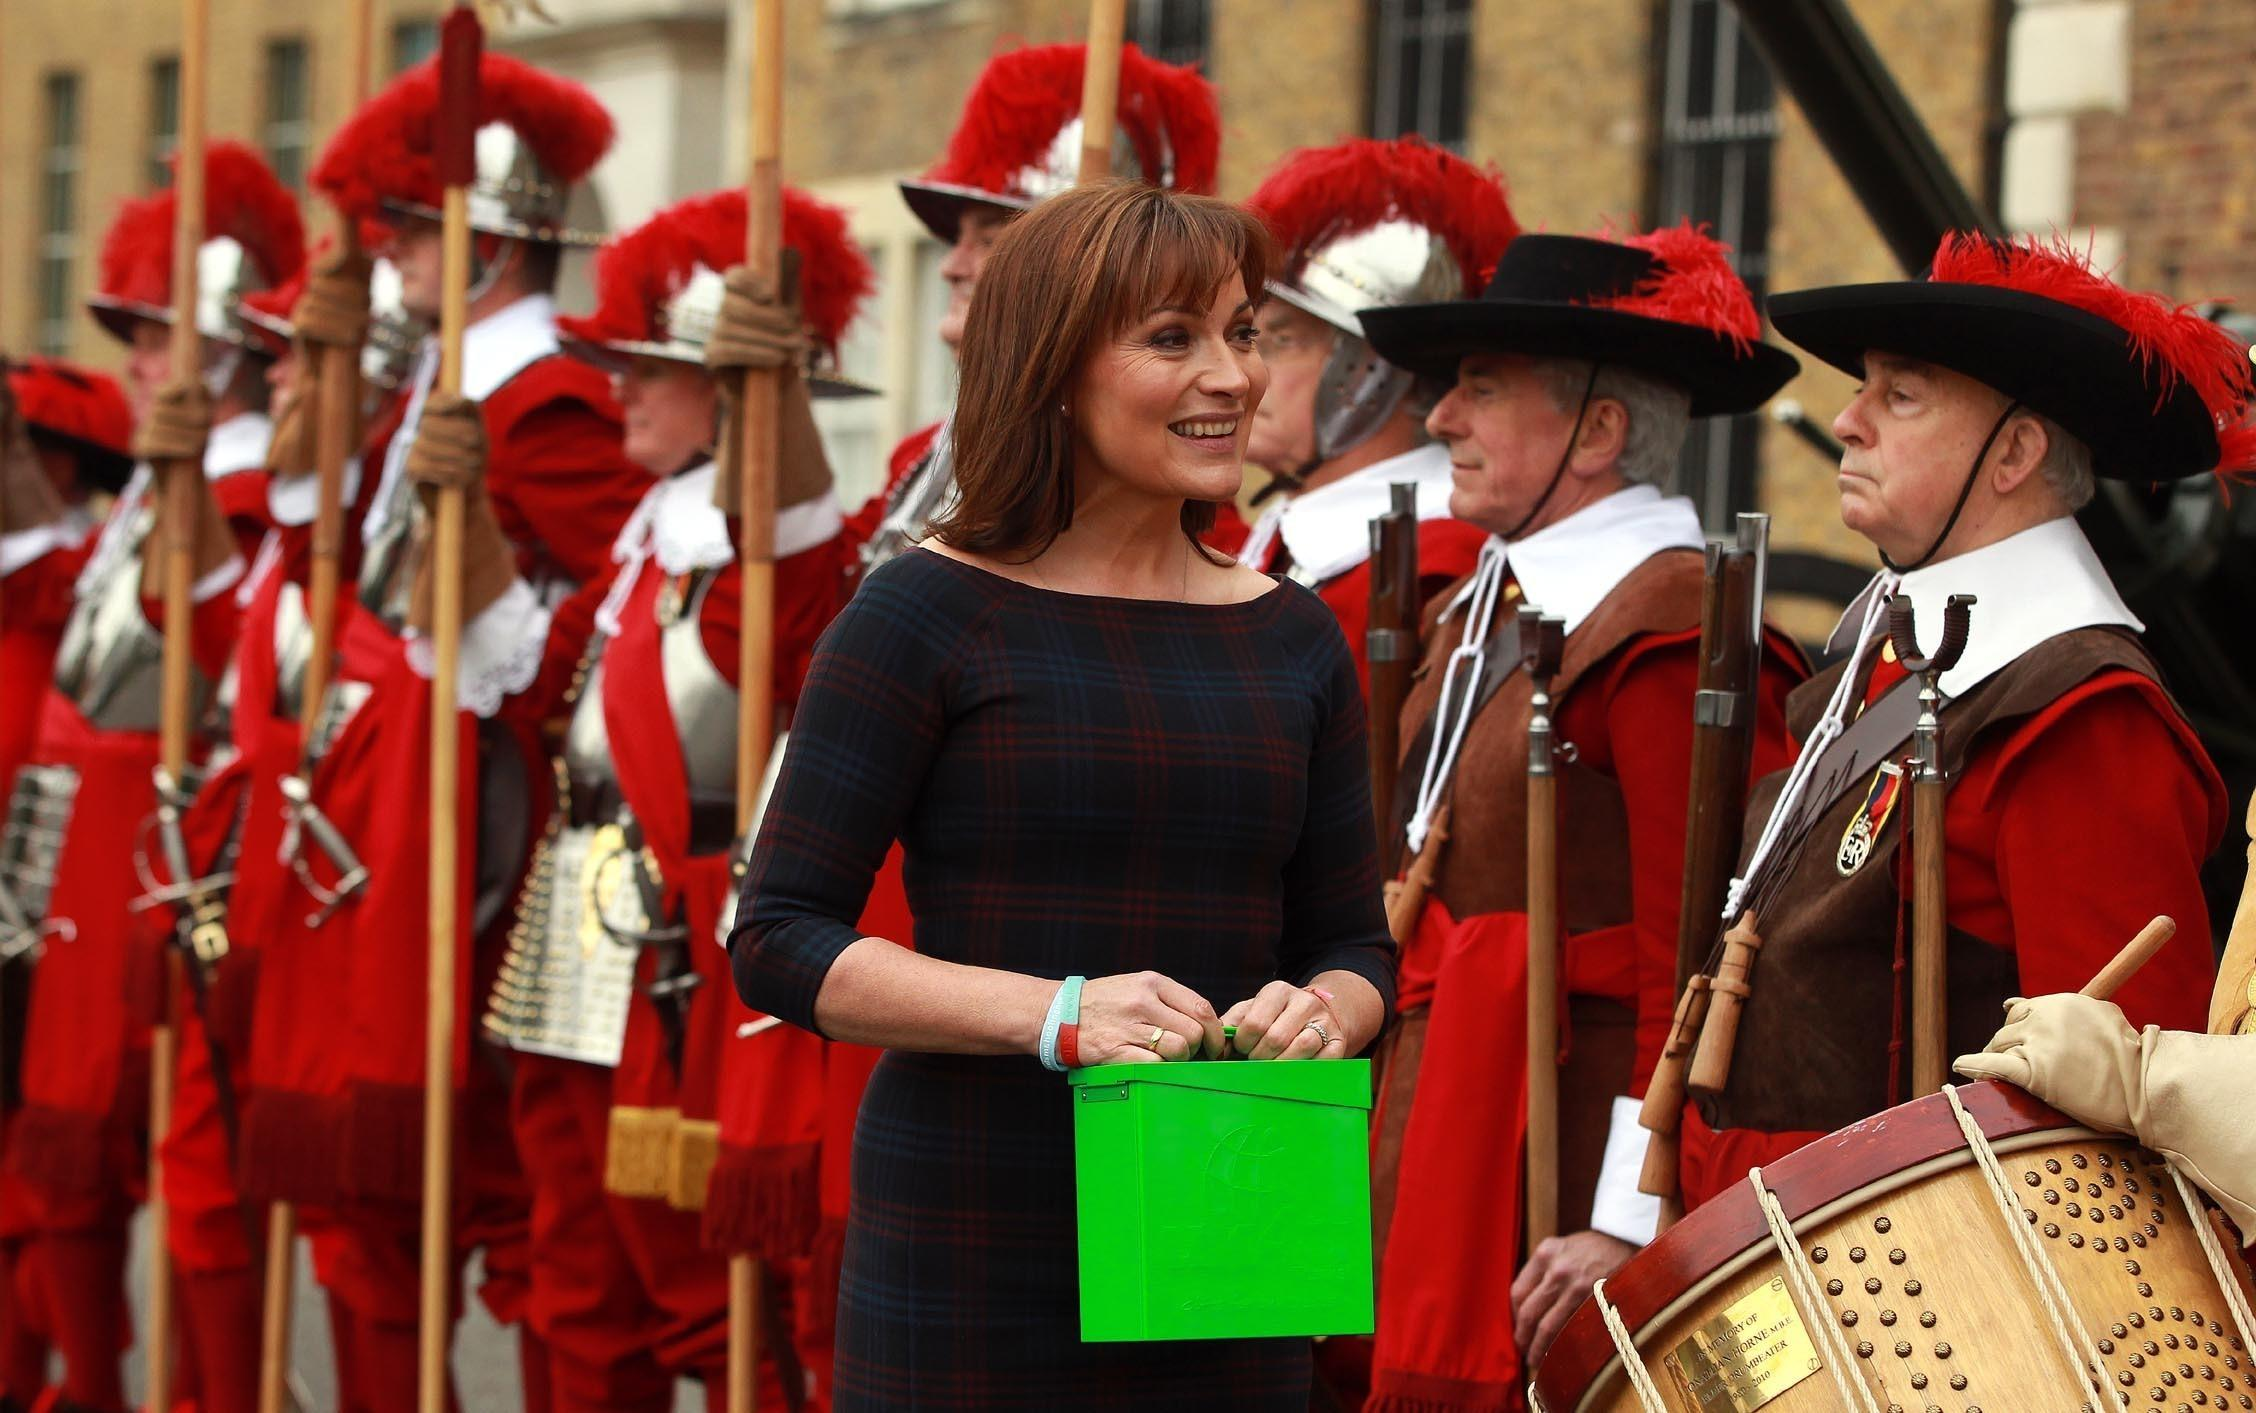 Lorraine Kelly launches the 2013 Christmas Box campaign for the military charity uk4u and then leads a 15-strong colourful Company of Pikemen & Musketeers, complete with Drumbeater and a Fifer from Bunhill Row to Armoury House, home to the Hounourable Artillery Company.